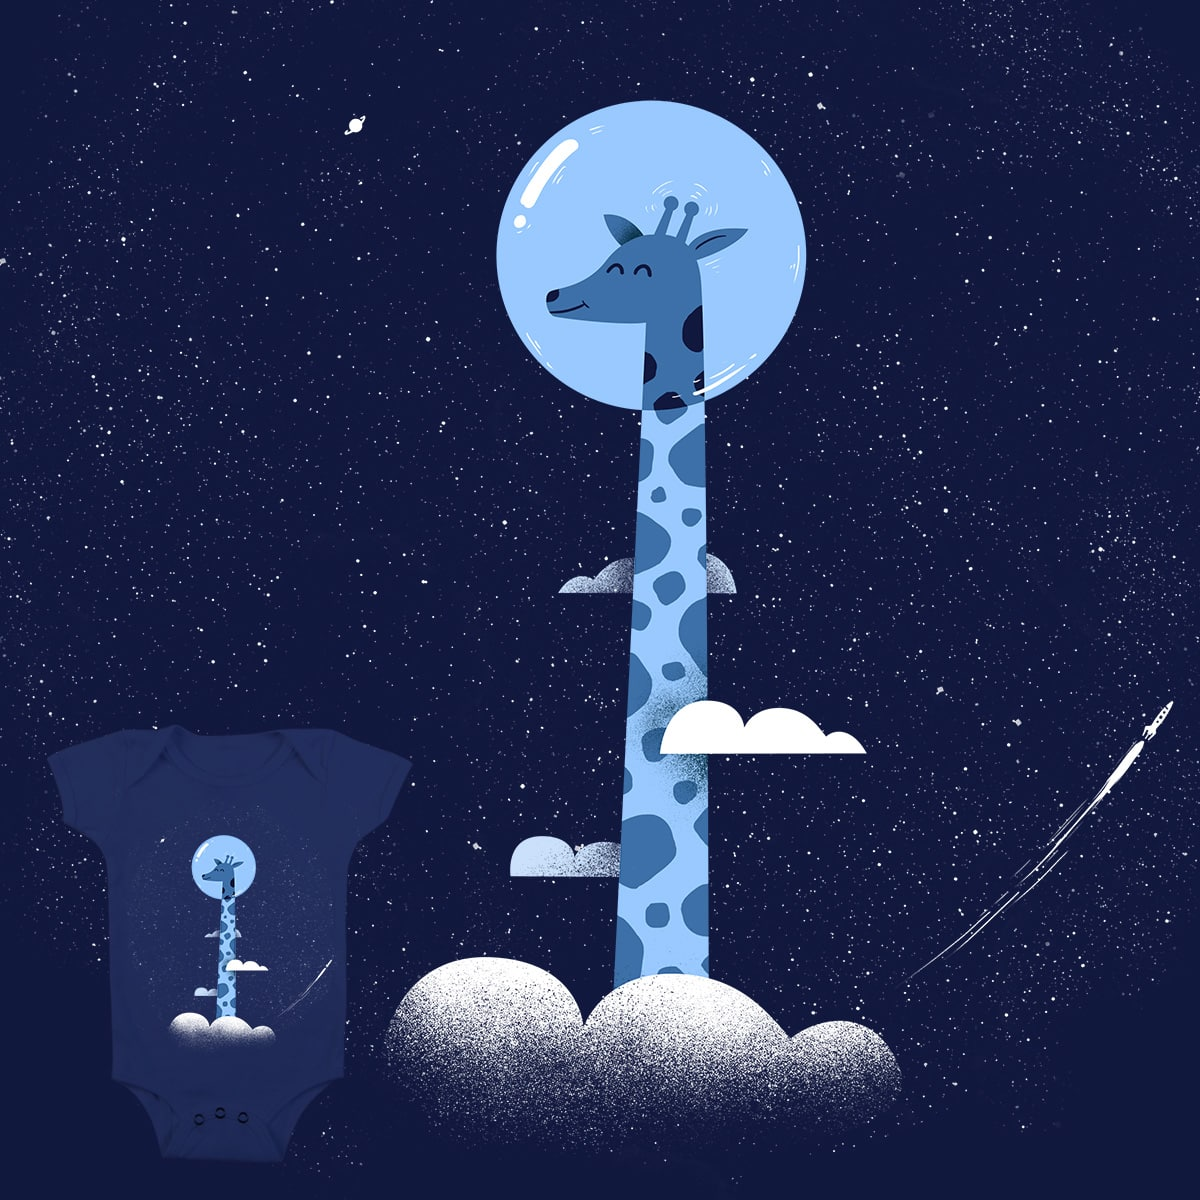 Space Giraffe by Arkzai on Threadless